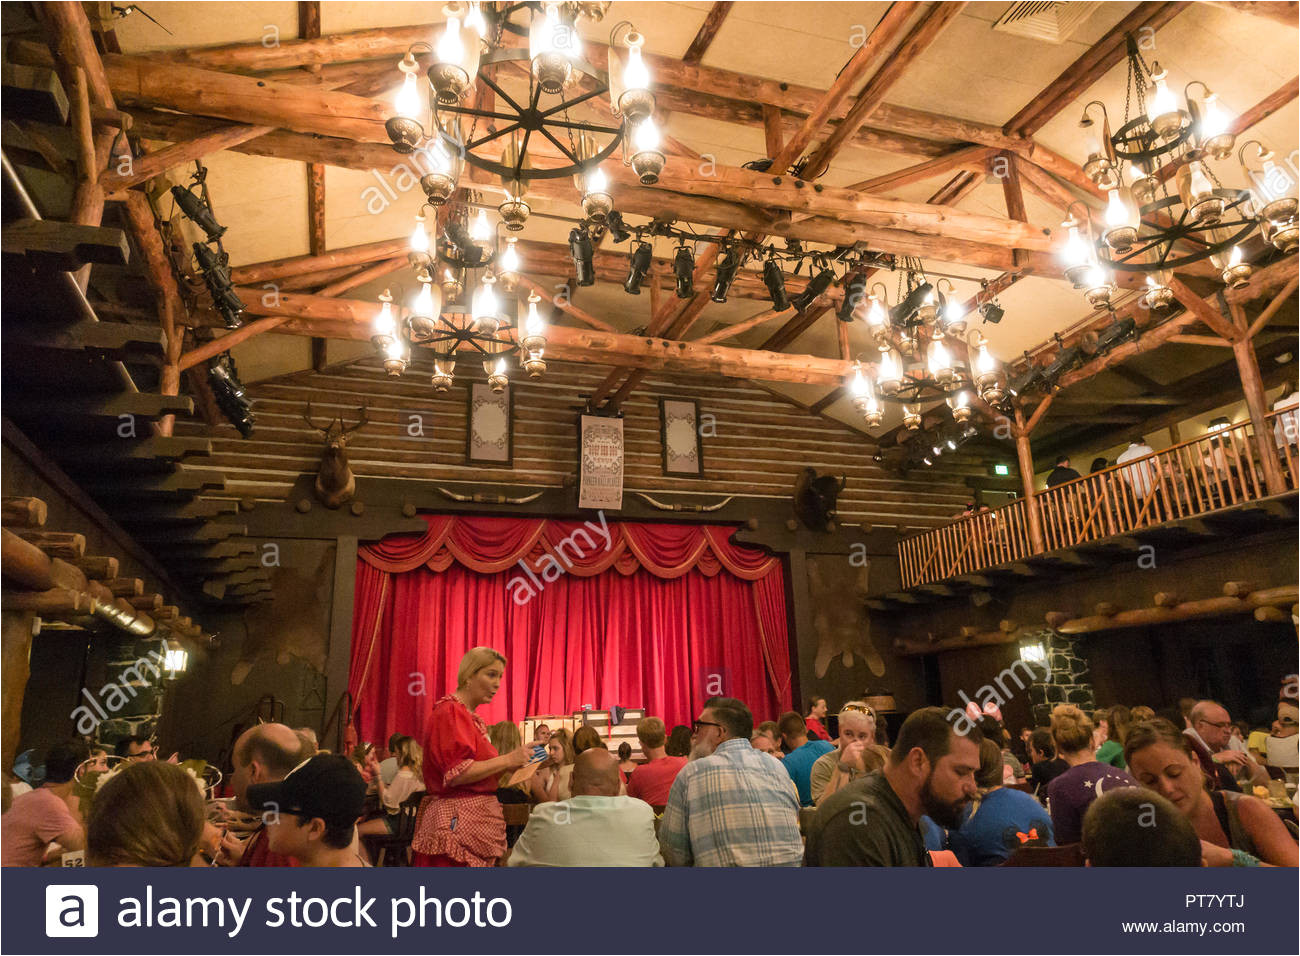 innenraum der pioneer halle am fort wilderness resort der heimat der hoope dee doo revue